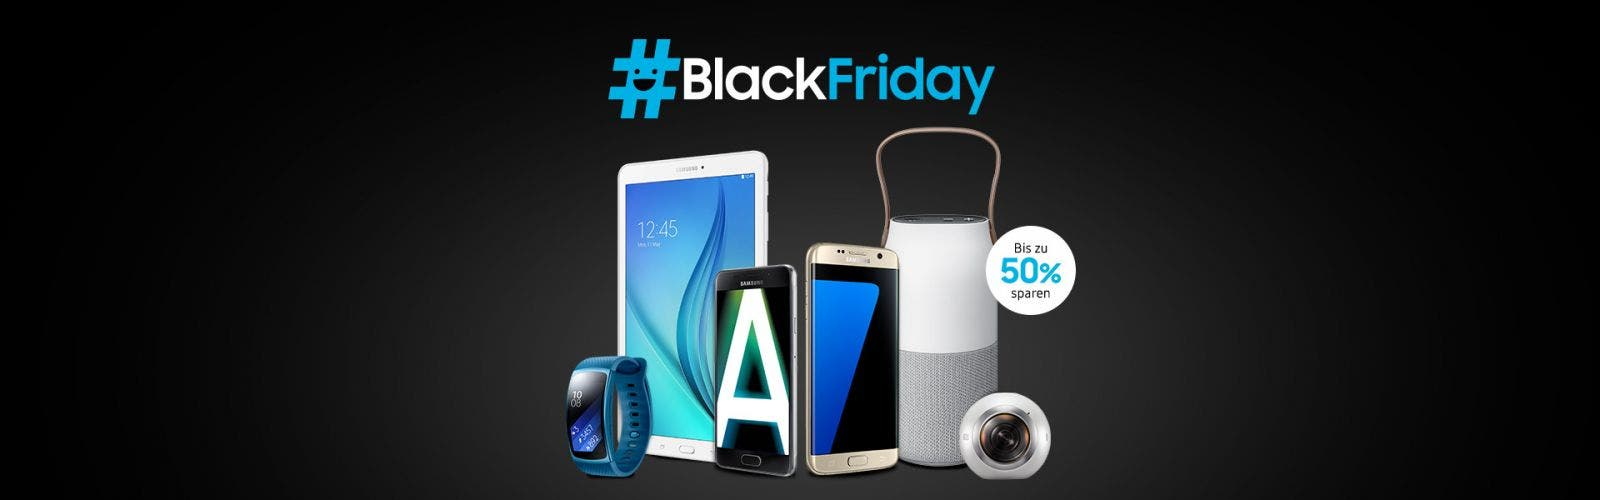 samsung-black-friday